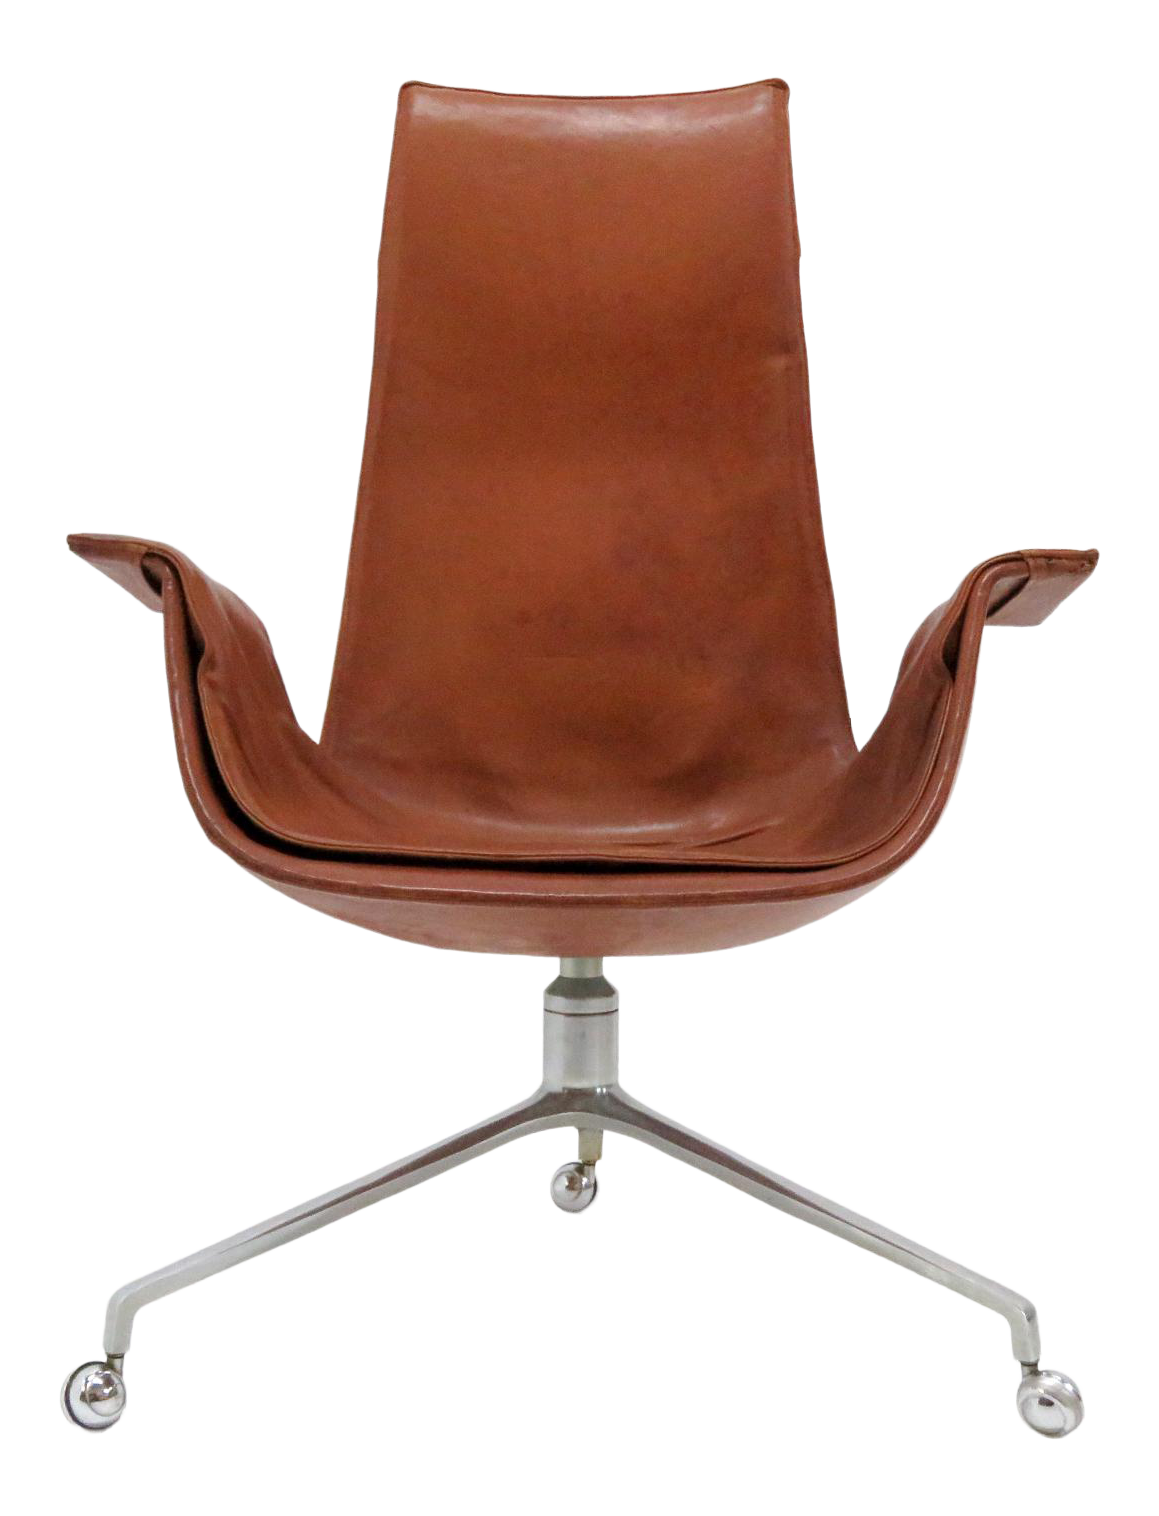 Vintage New Mid Century Modern Office Chairs Chairish